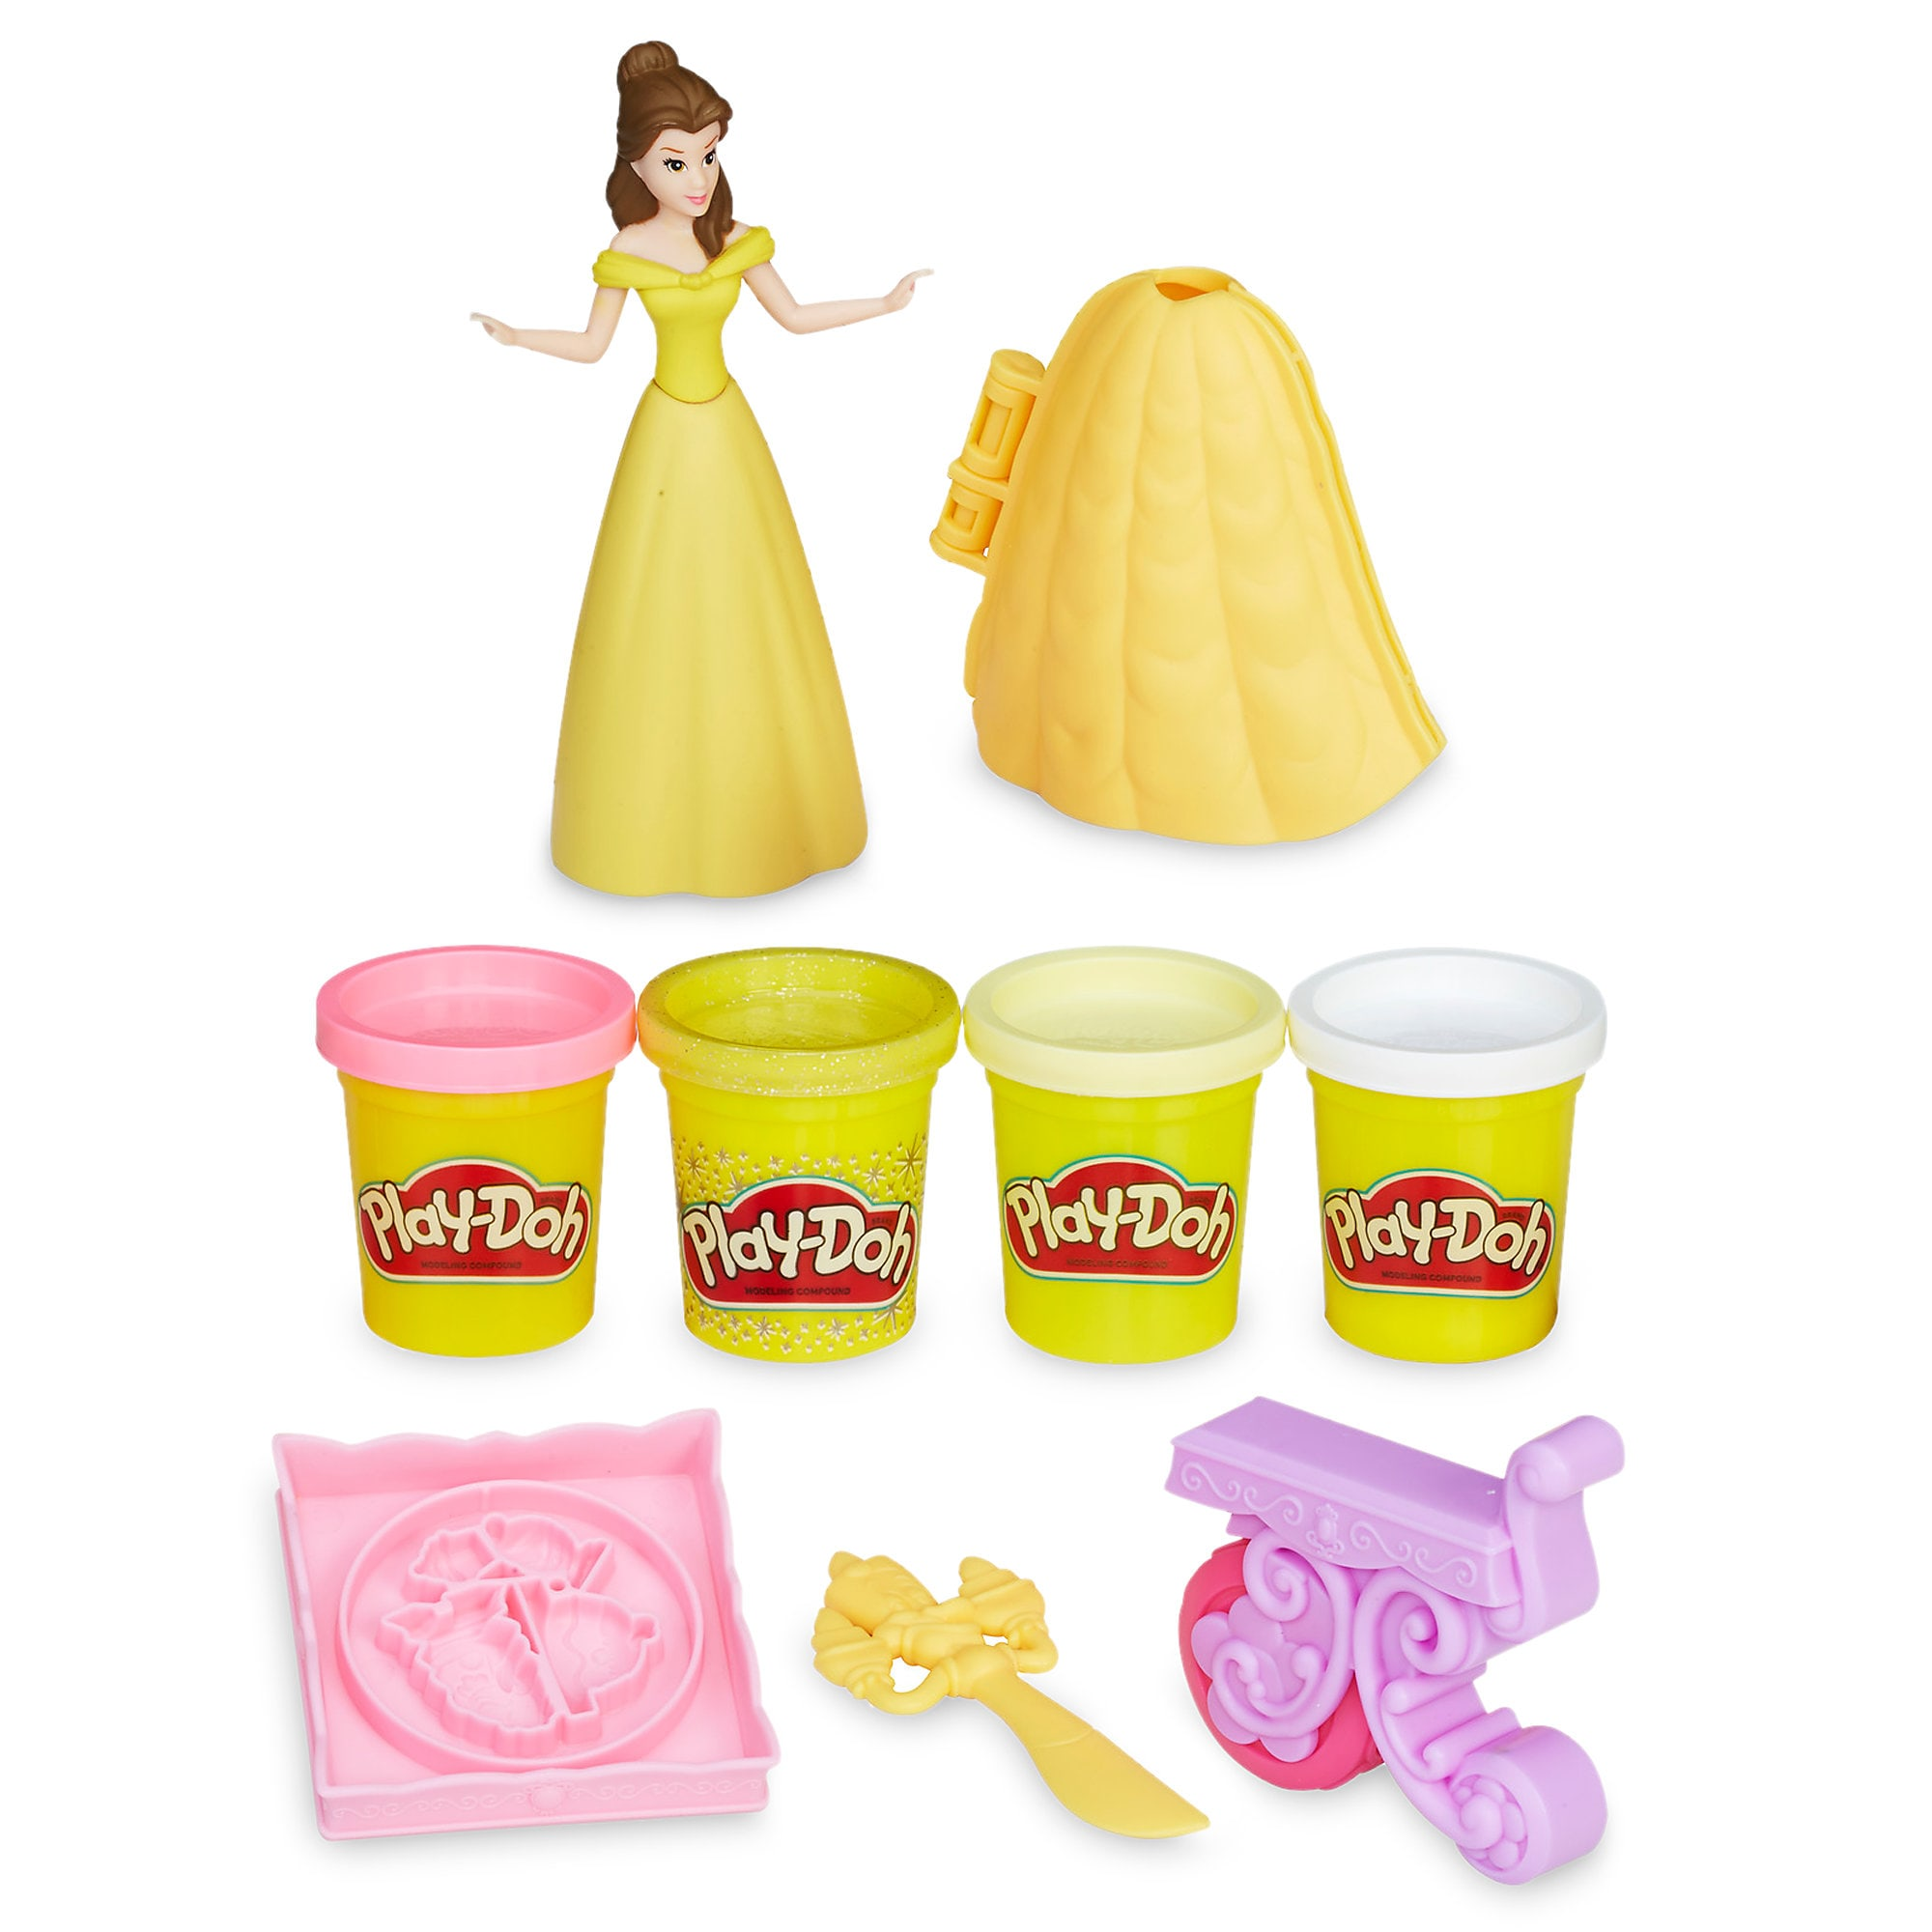 Disney Princess Be Our Guest Banquet Play-Doh Set